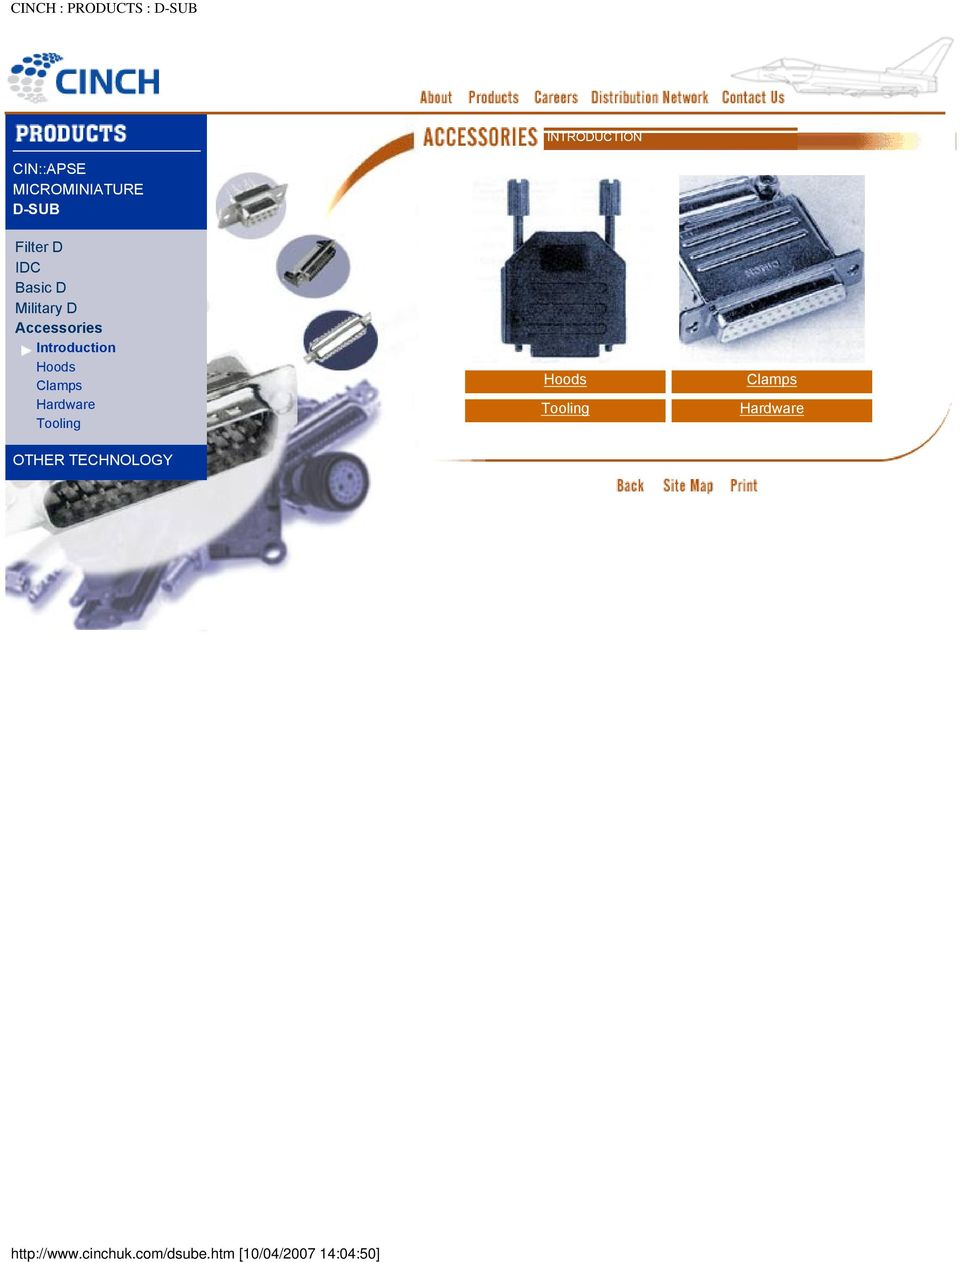 Clamps Hardware http://www.